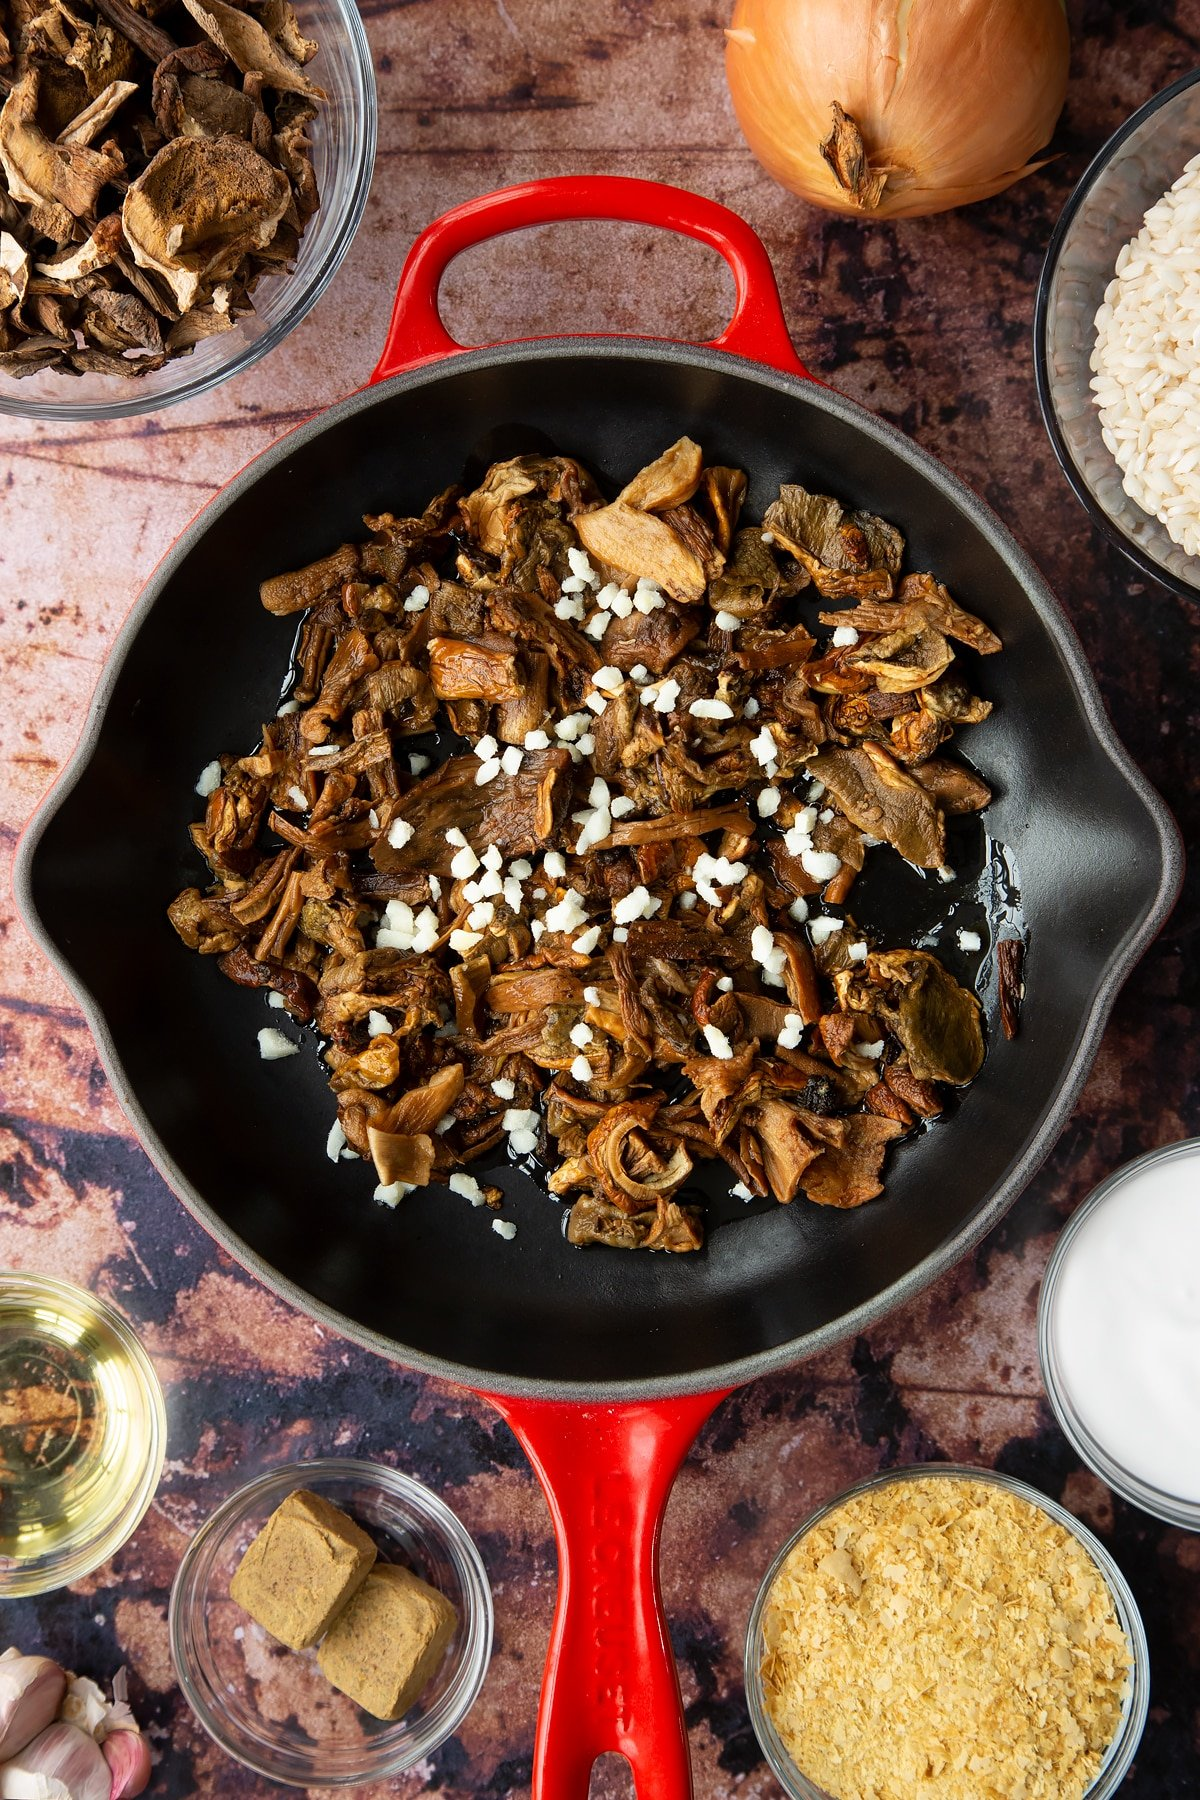 Soaked porcini mushrooms, oil and garlic in a pan. Ingredients to make vegan mushroom risotto surround the pan.